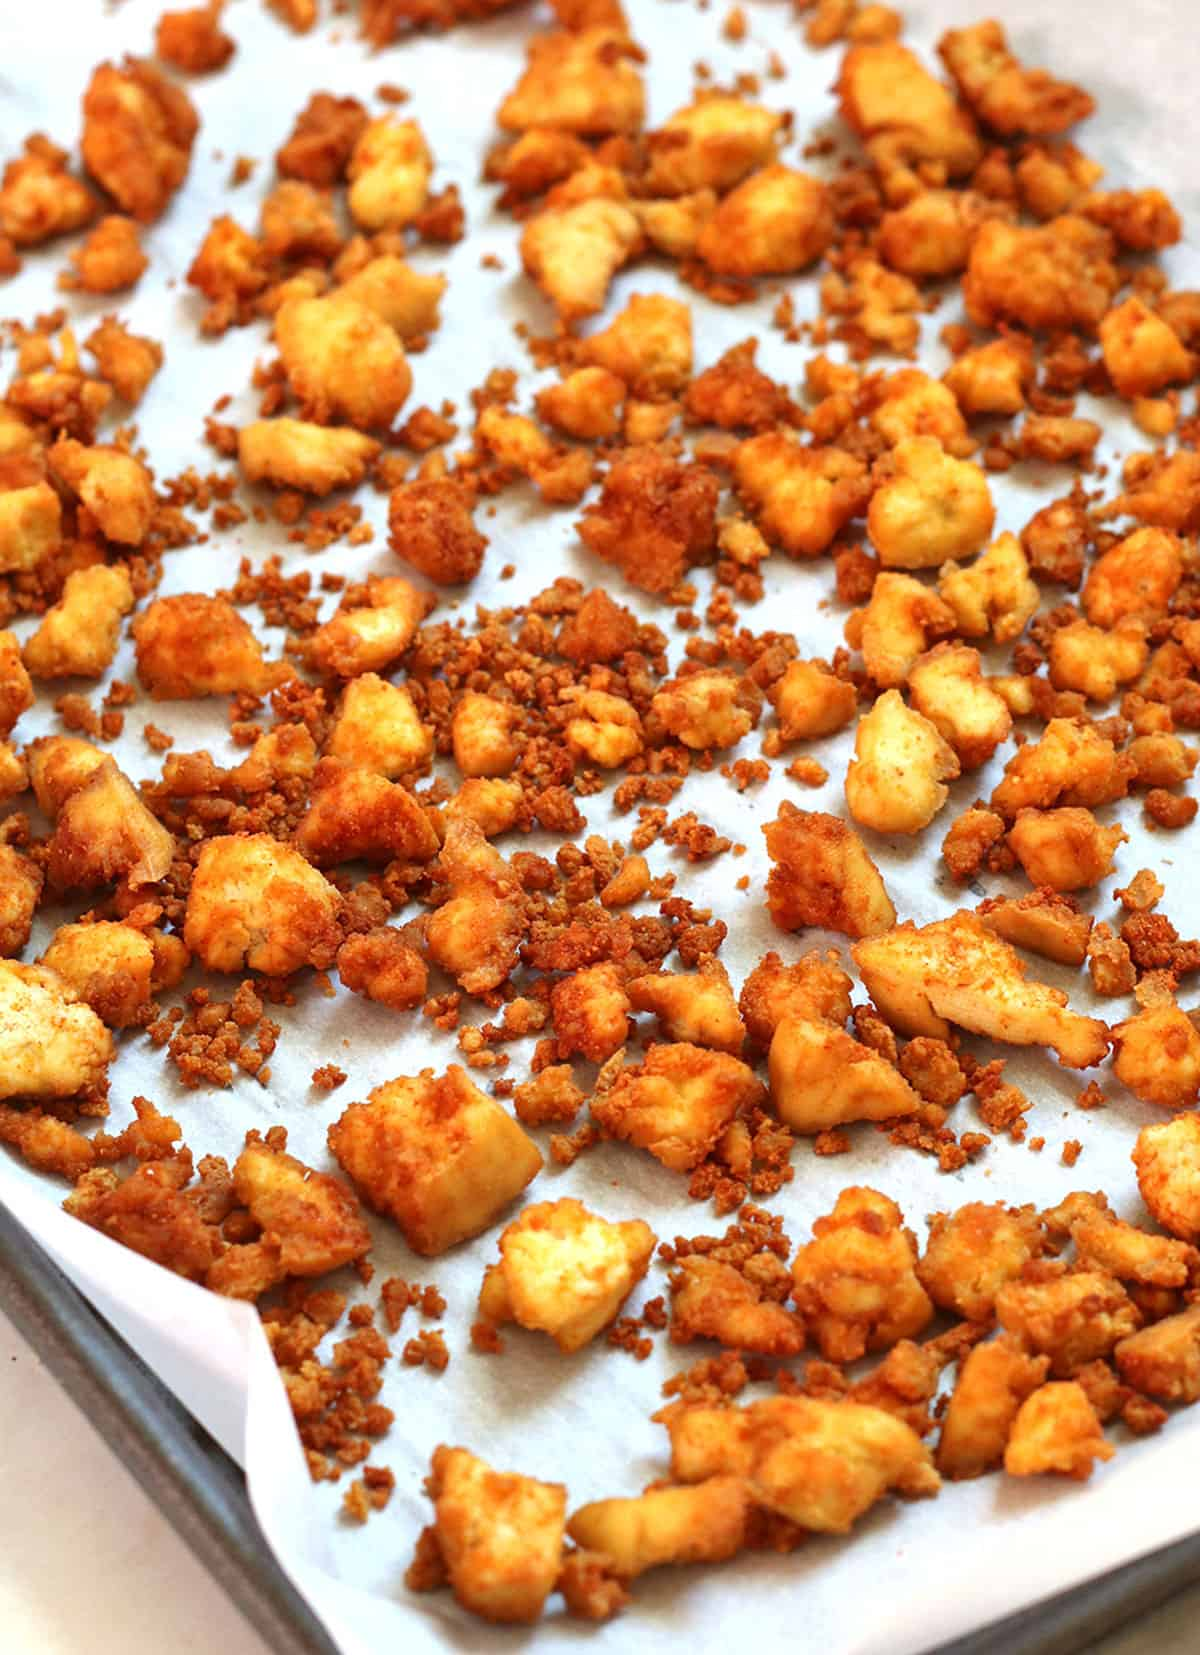 tofu crumbles on a sheet pan with parchment paper